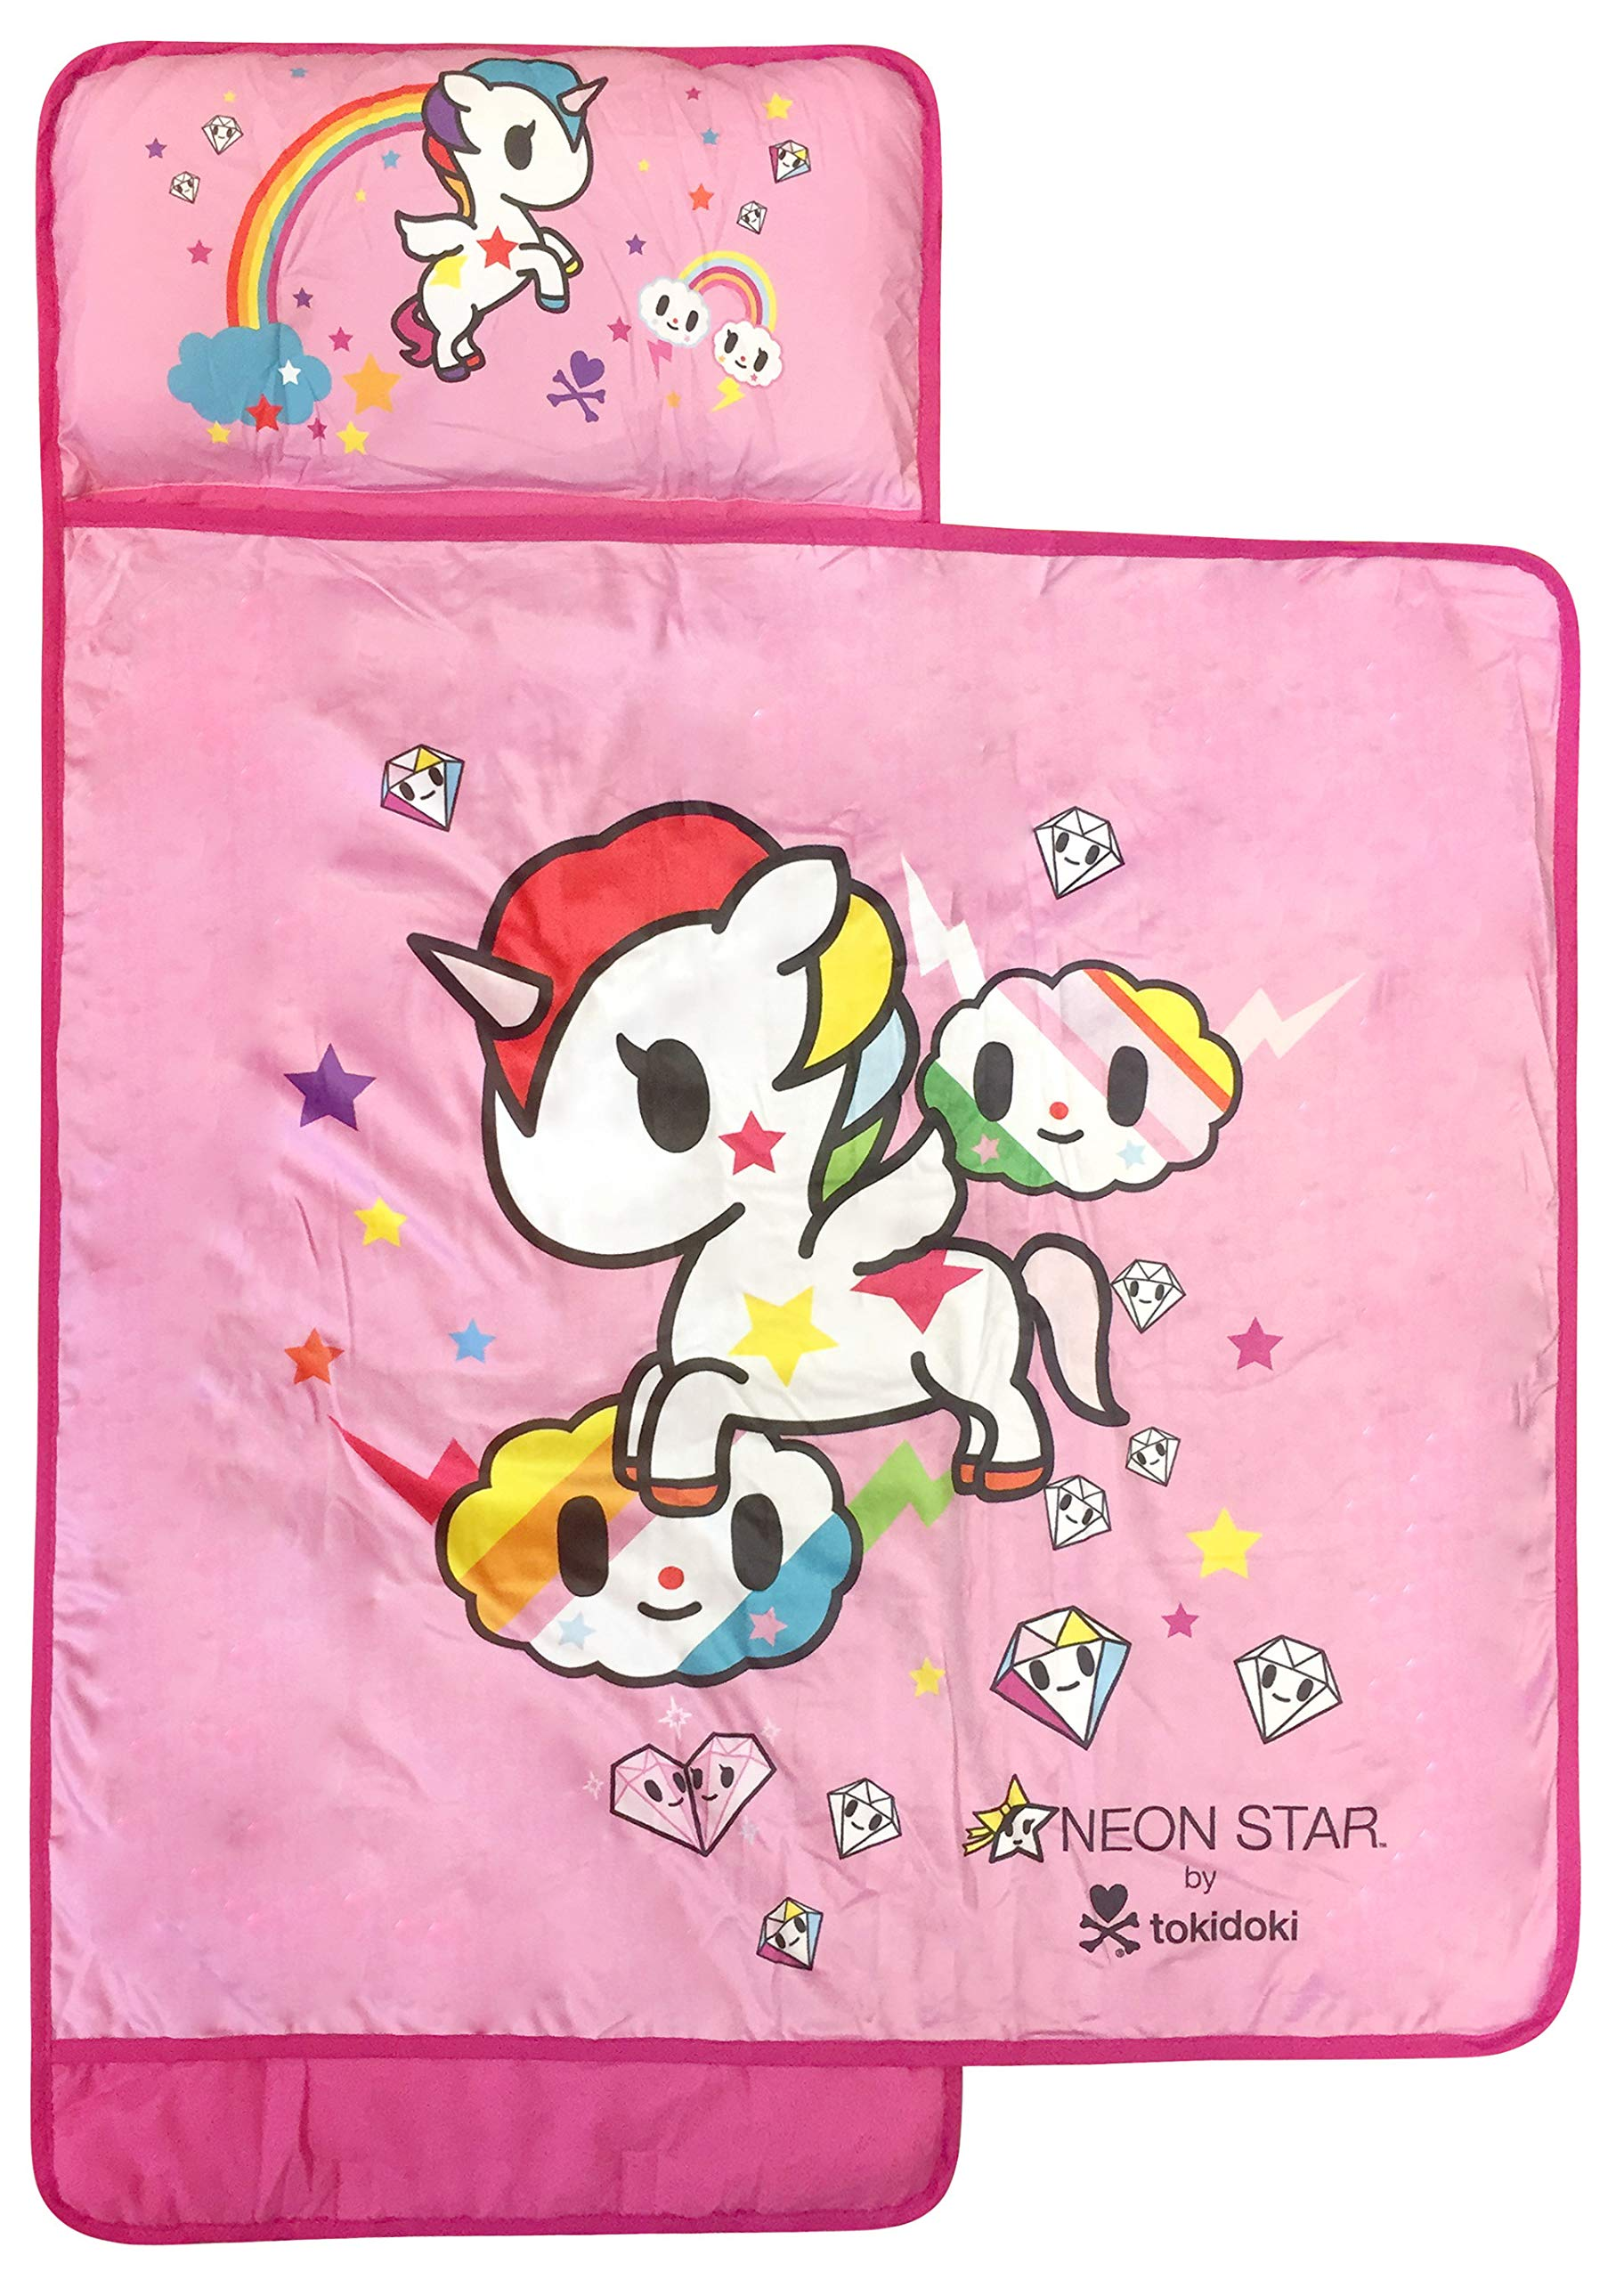 Jay Franco Tokidoki Neonstar Unicorno Rainbow Nap Mat - Built-in Pillow and Blanket Featuring Unicorno - Super Soft Microfiber Kids'/Toddler/Children's Bedding, Ages 3-7 (Official Tokidoki Product)